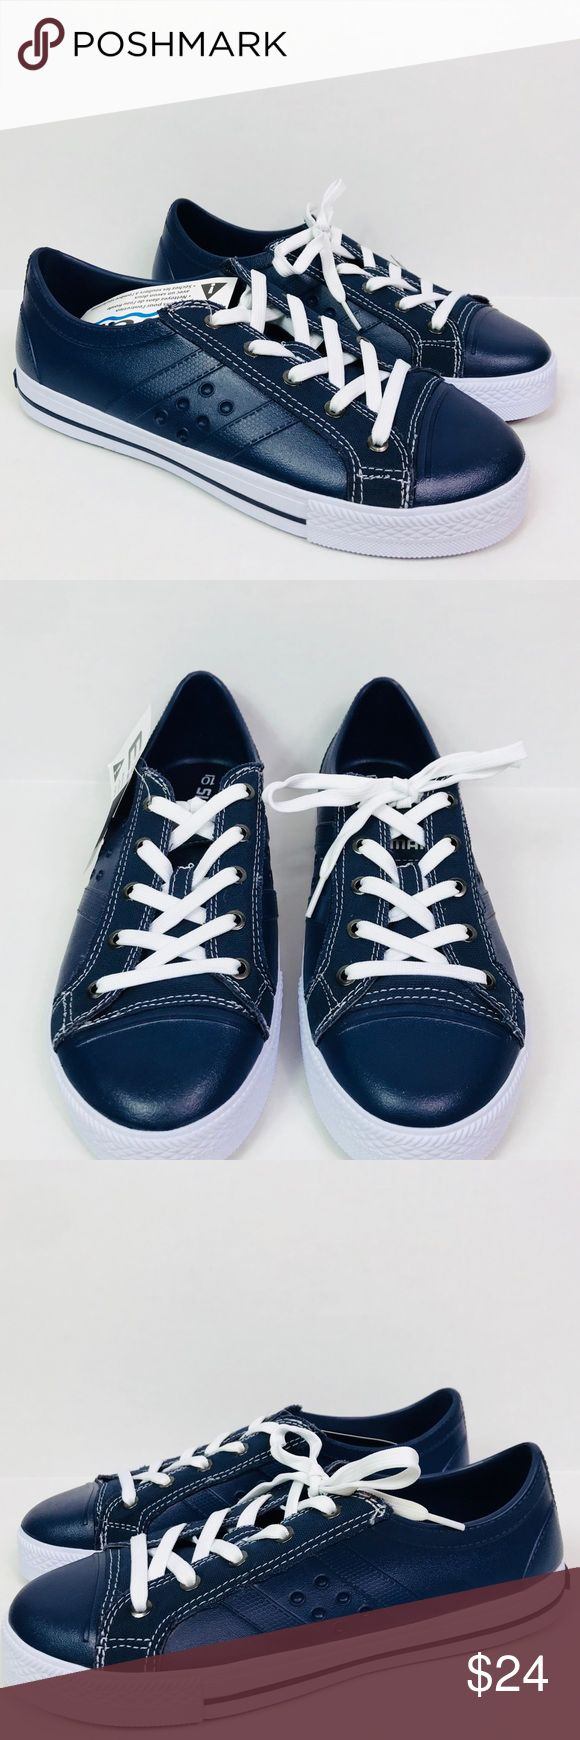 Shimano Evair Fishing Boating Shoes Sz 10 Description:  Blue/White rubber boat/fishing shoes, New without box/ Lace-Up  Size:  10  New without tags Shimano Shoes Boat Shoes